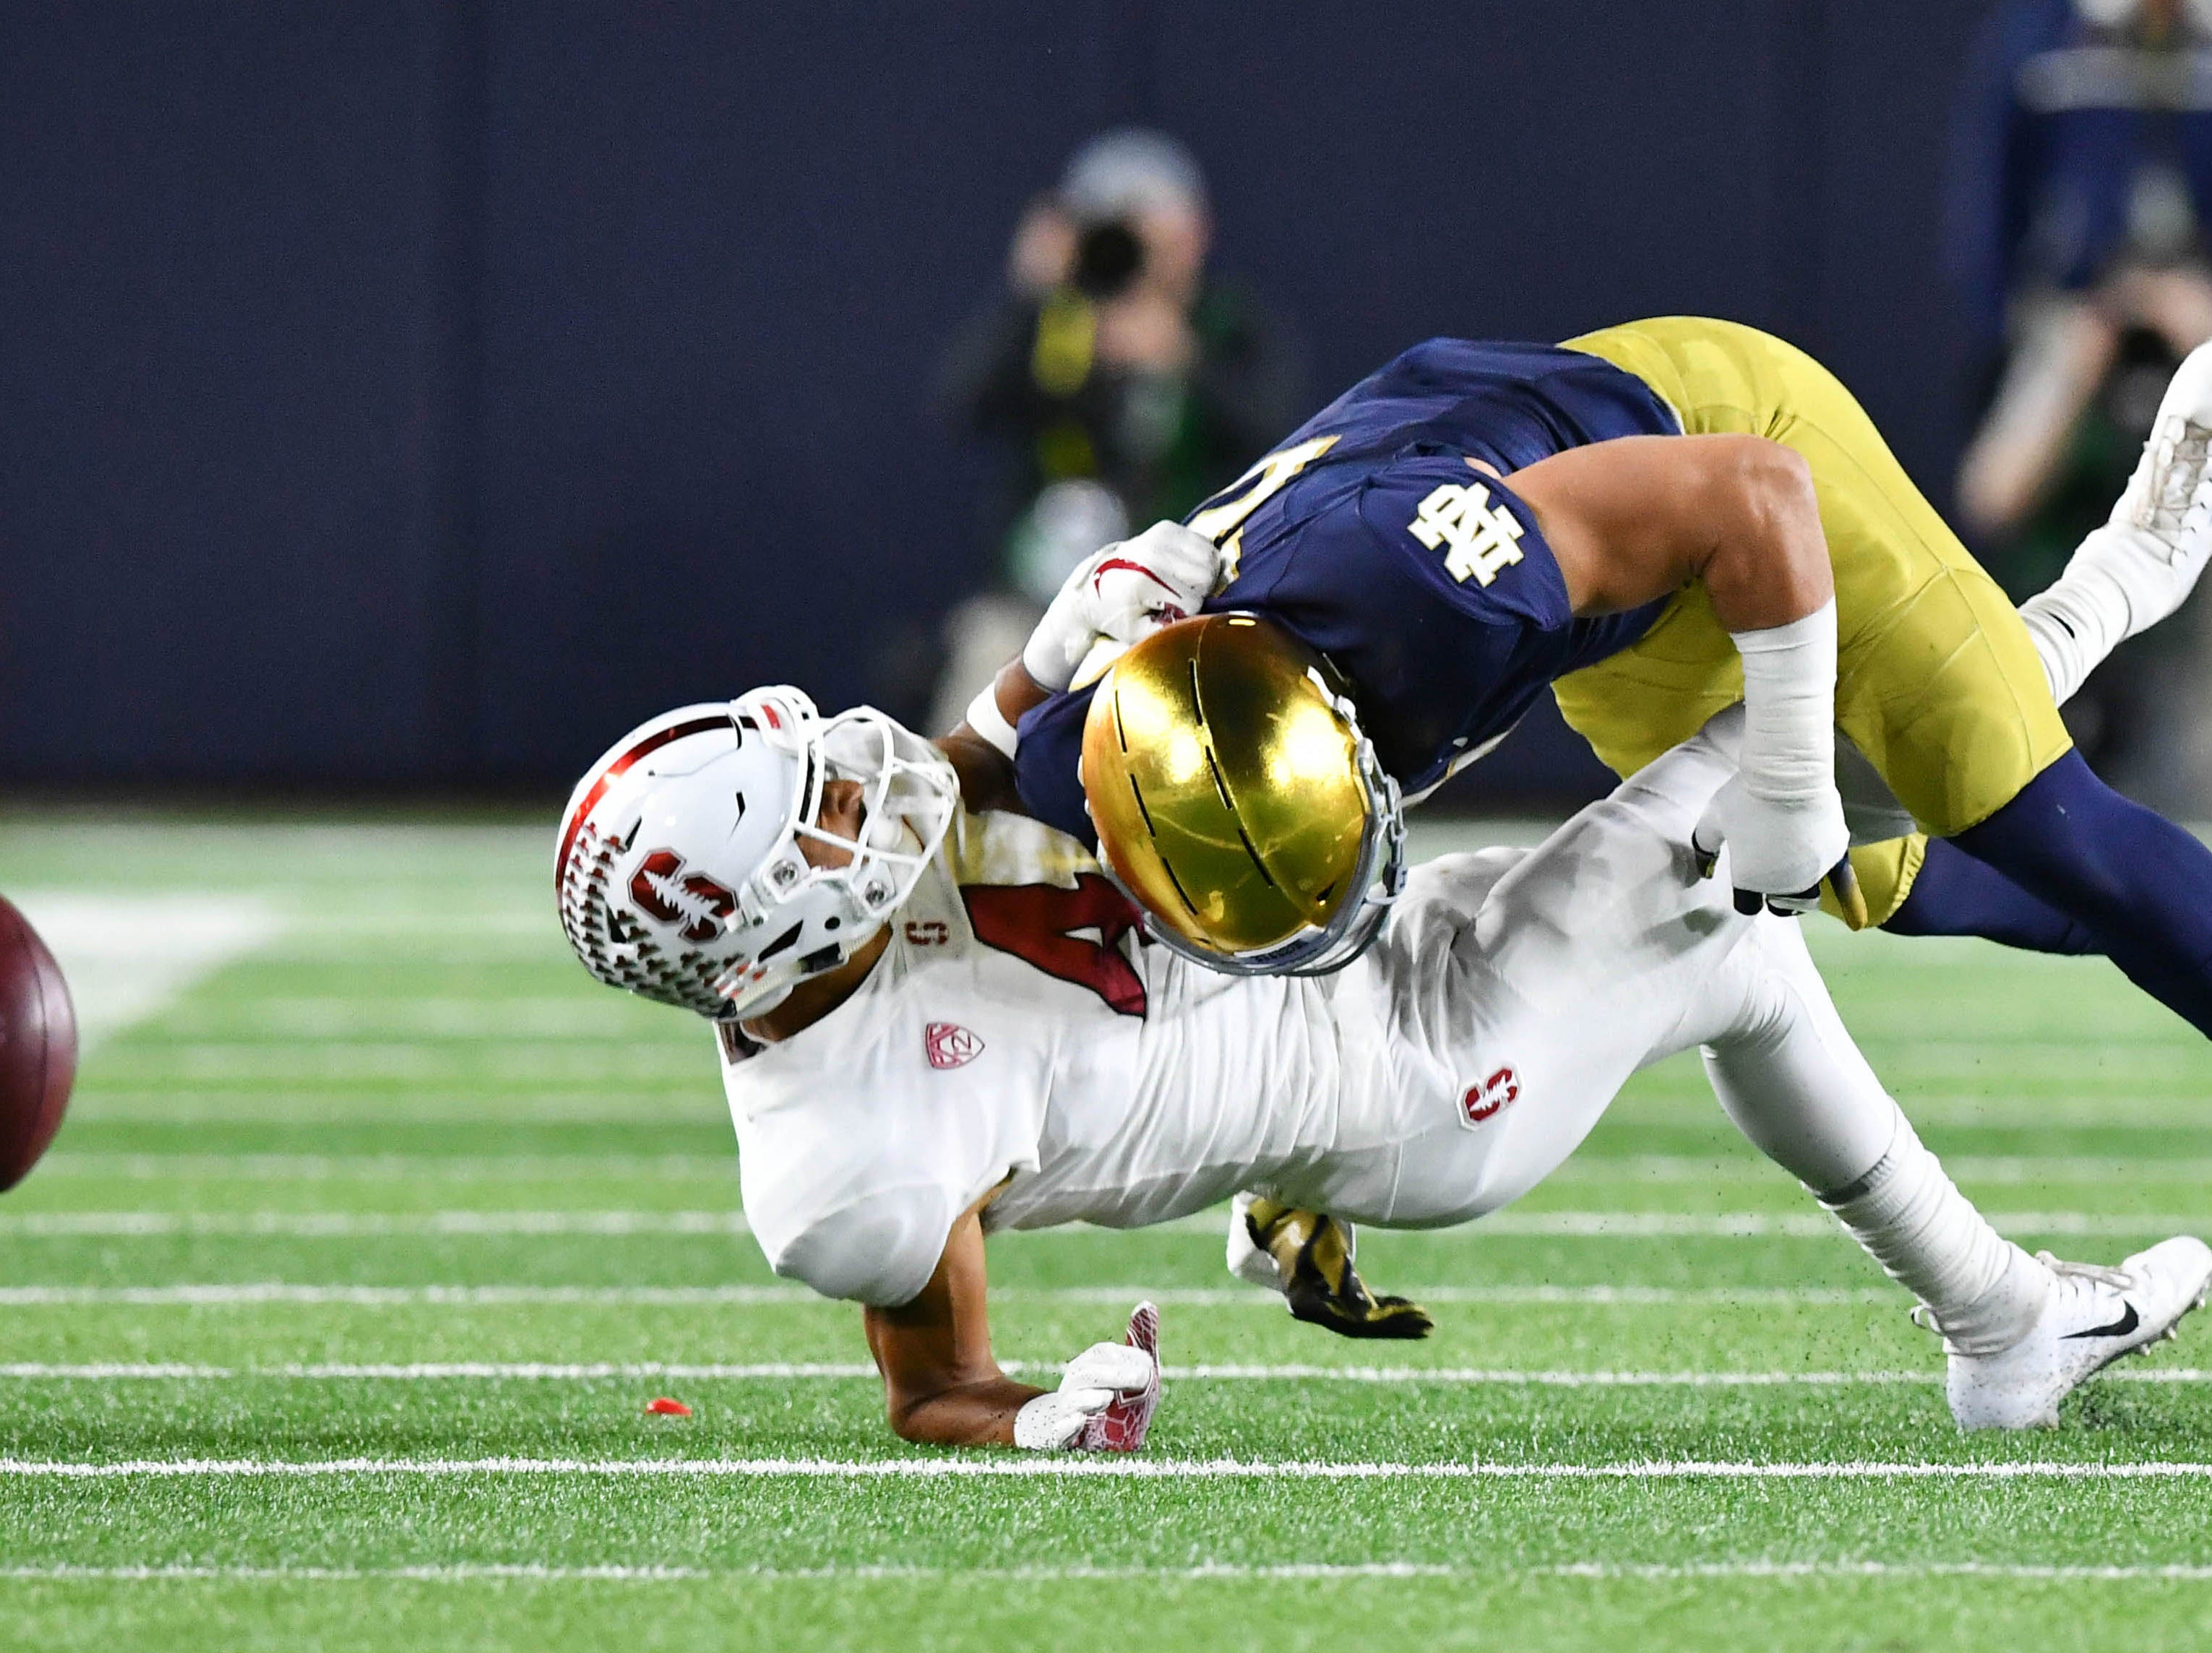 Notre Dame Fighting Irish linebacker Drue Tranquill (23) breaks up a pass intended for Stanford Cardinal wide receiver Michael Wilson (4) in the second quarter at Notre Dame Stadium.